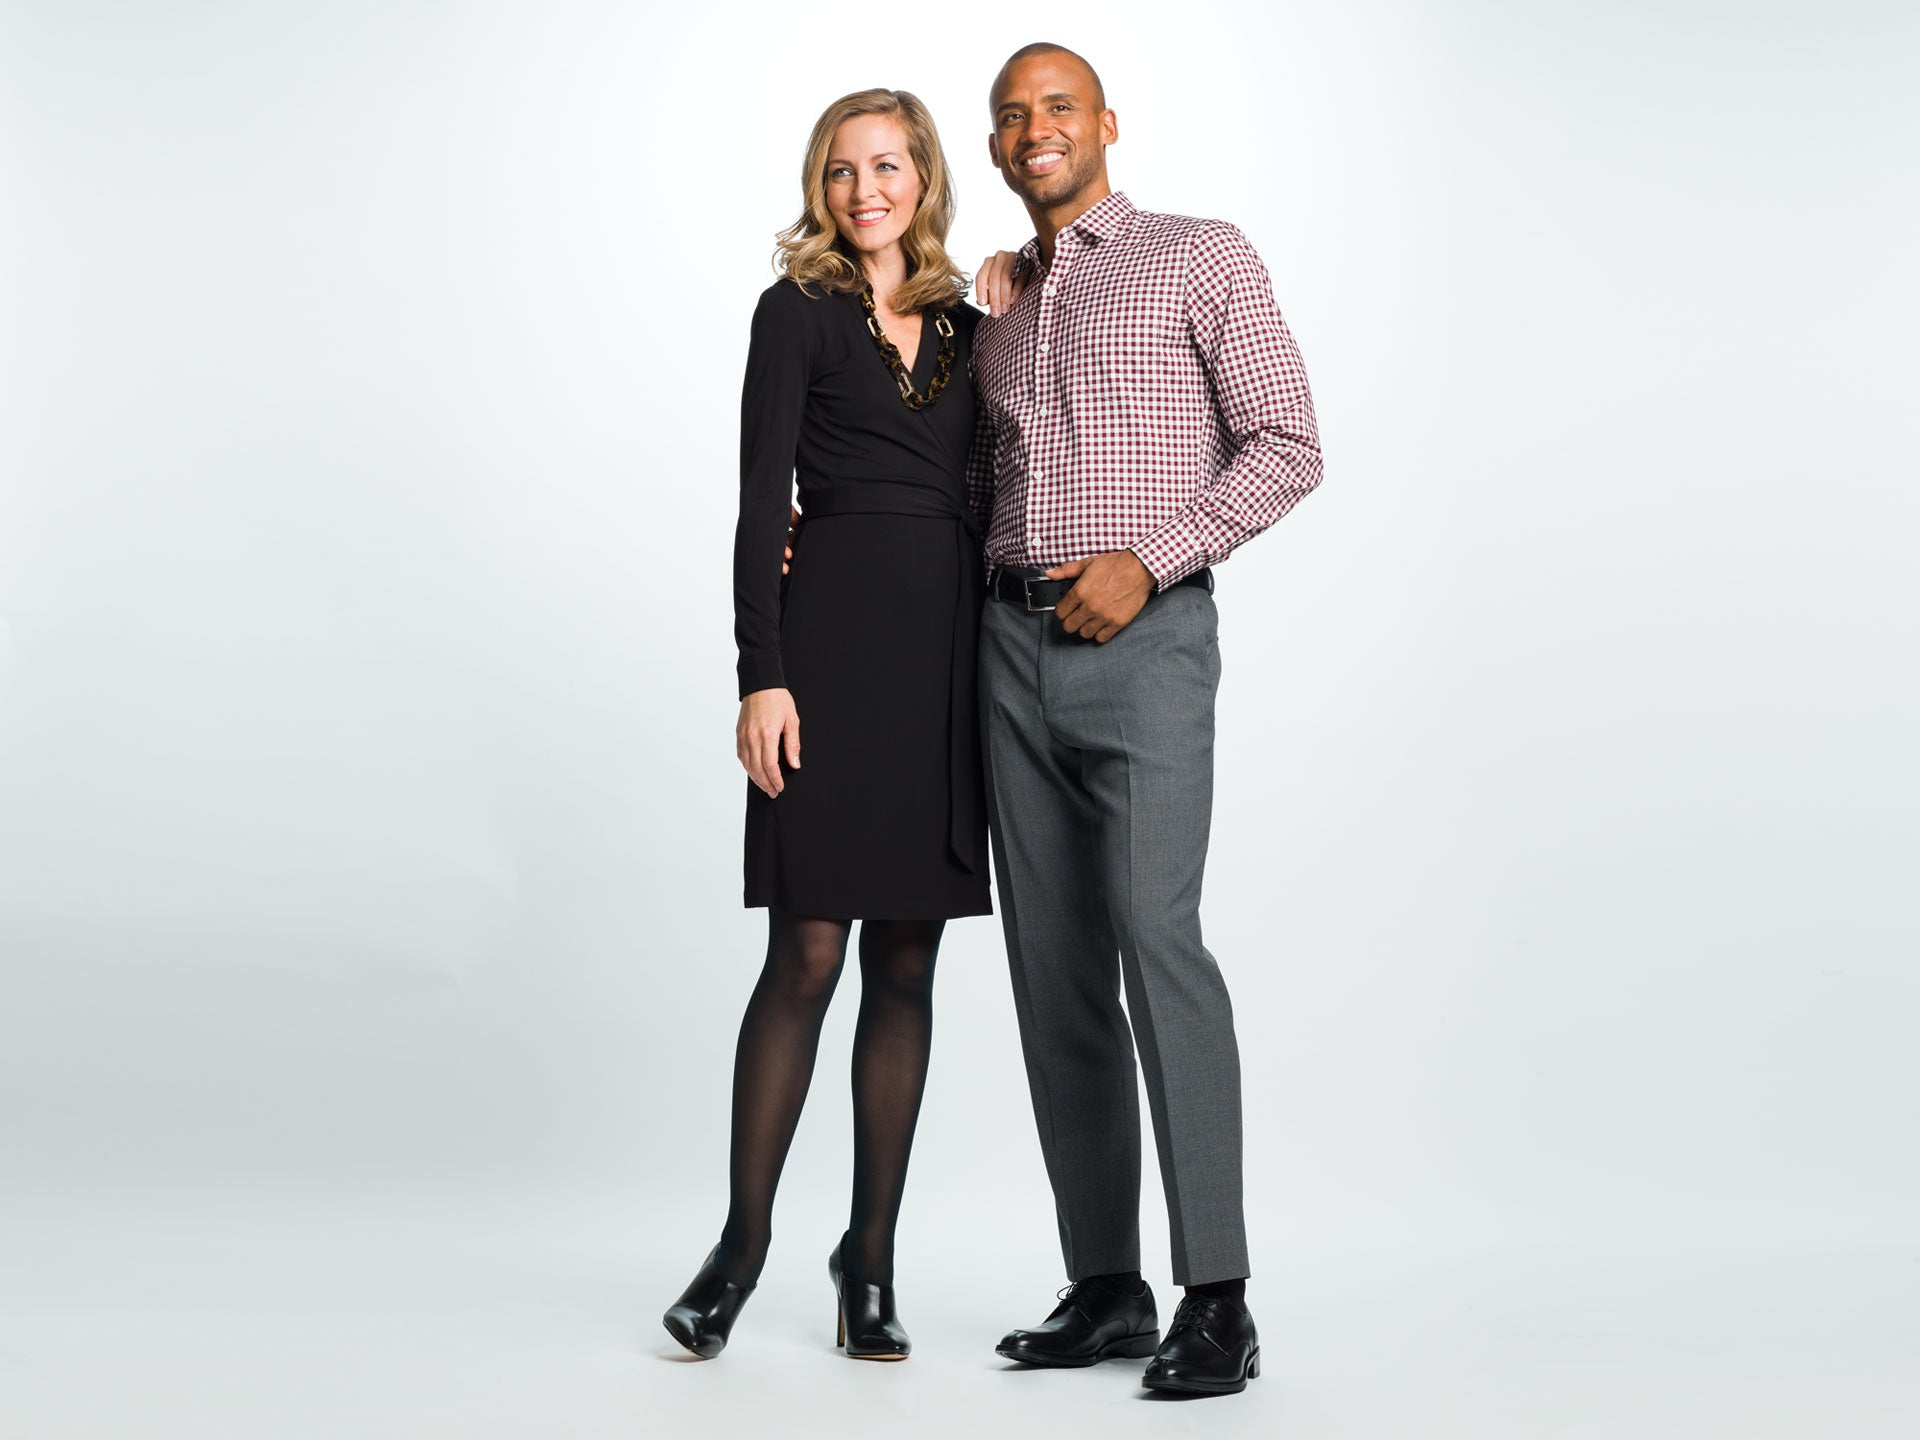 Compression socks and stockings for daily wear, dress, and fashion.